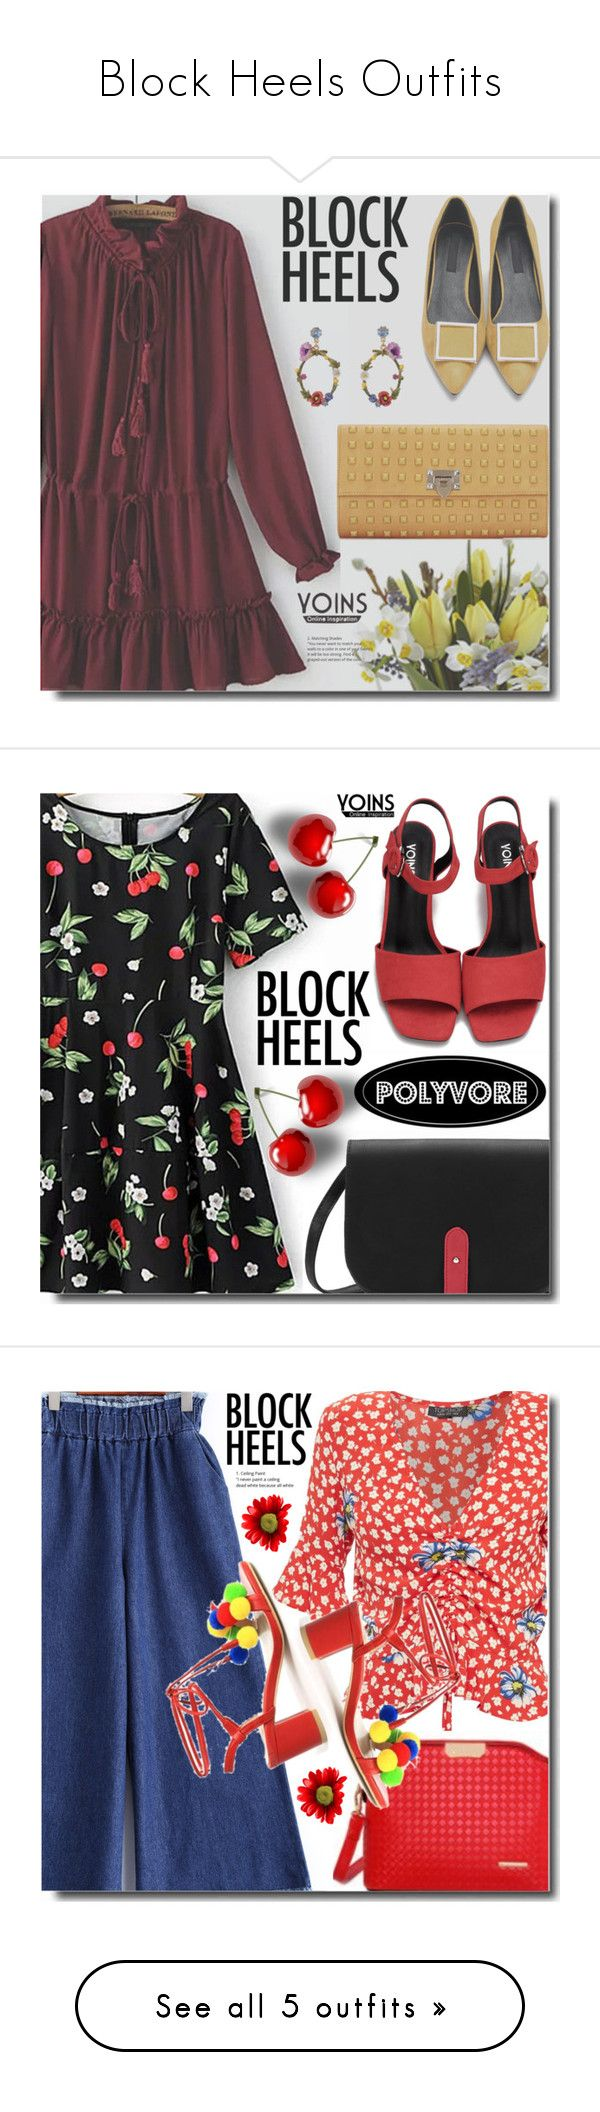 """Block Heels Outfits"" by soks ❤ liked on Polyvore featuring Les Néréides, polyvoreeditorial, Topshop, Mercedes Castillo and Hollister Co."